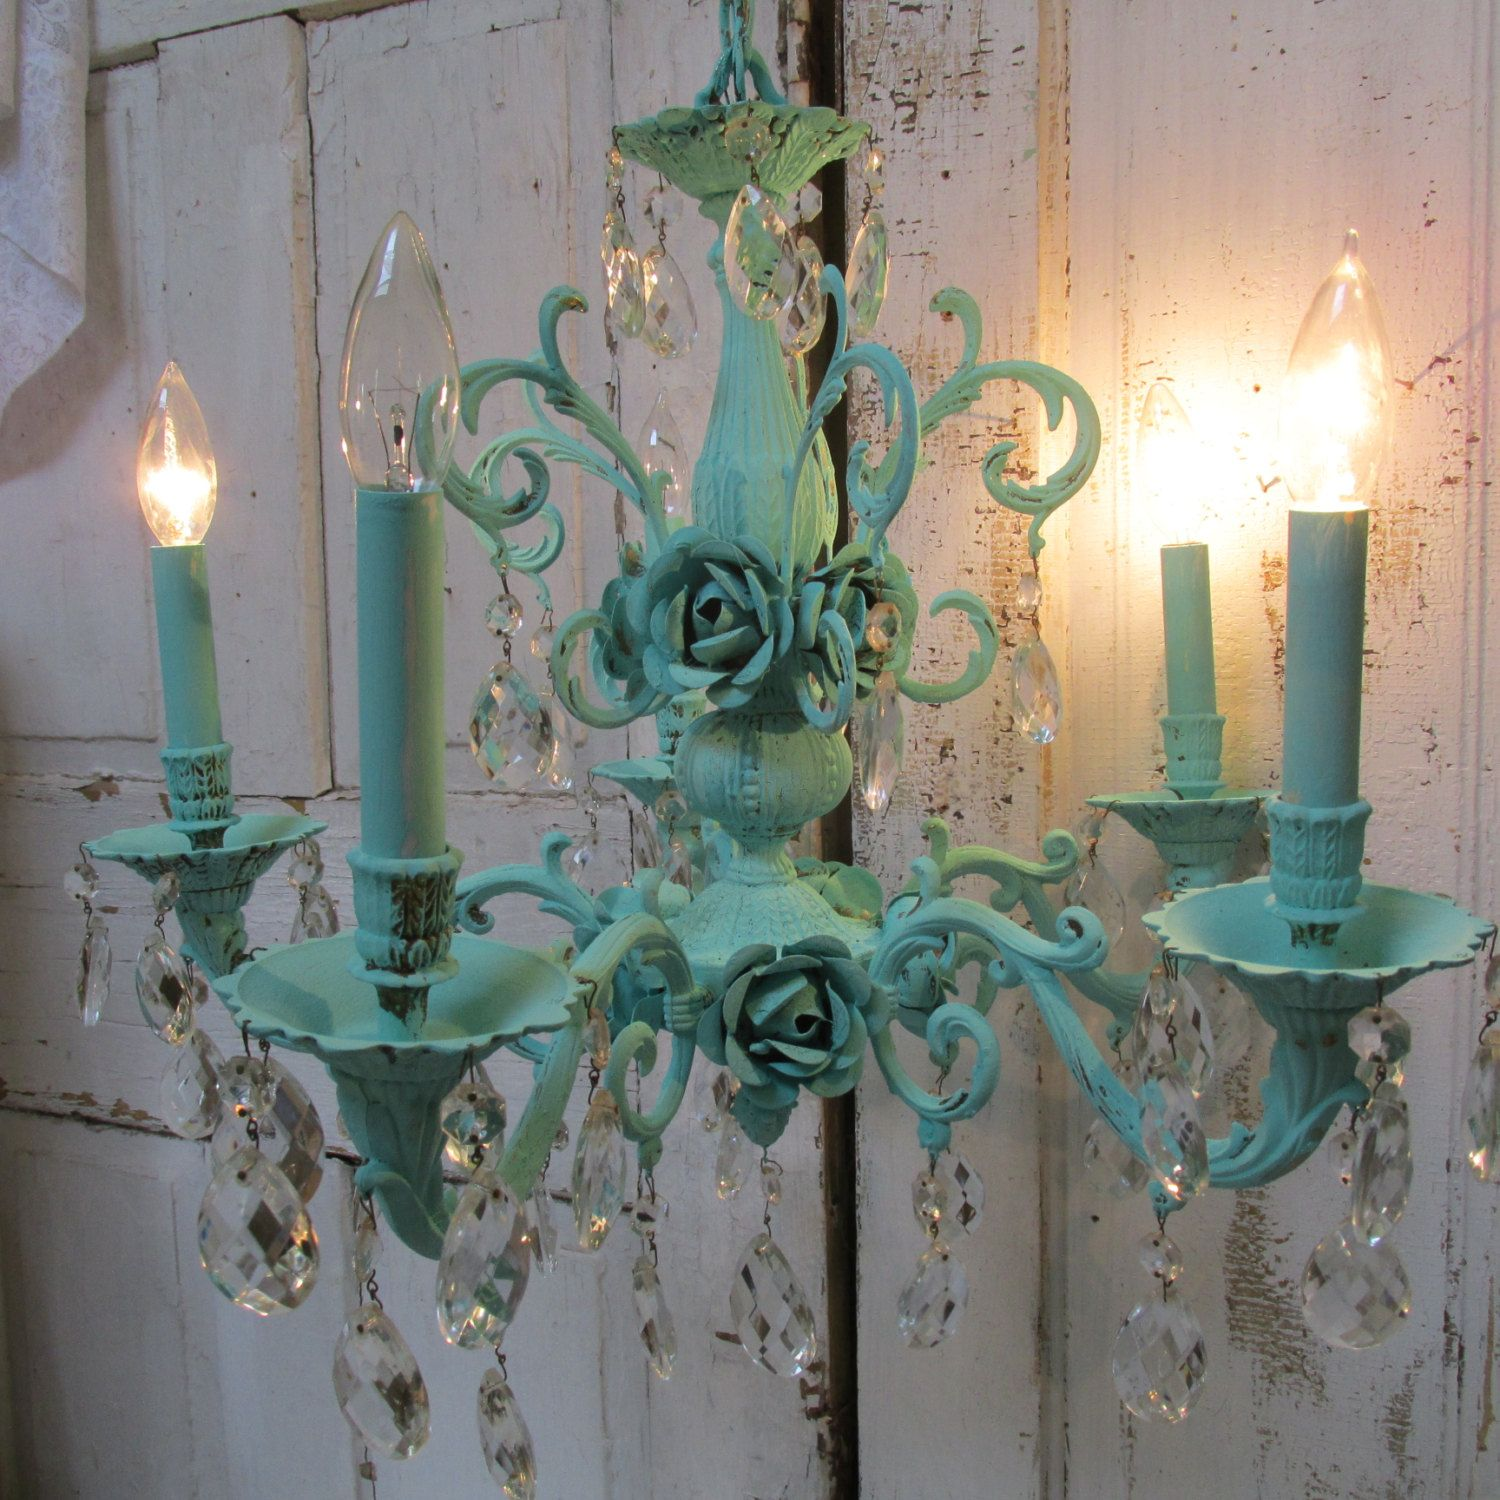 Ornate aqua chandelier with crystals embellished with cabbage